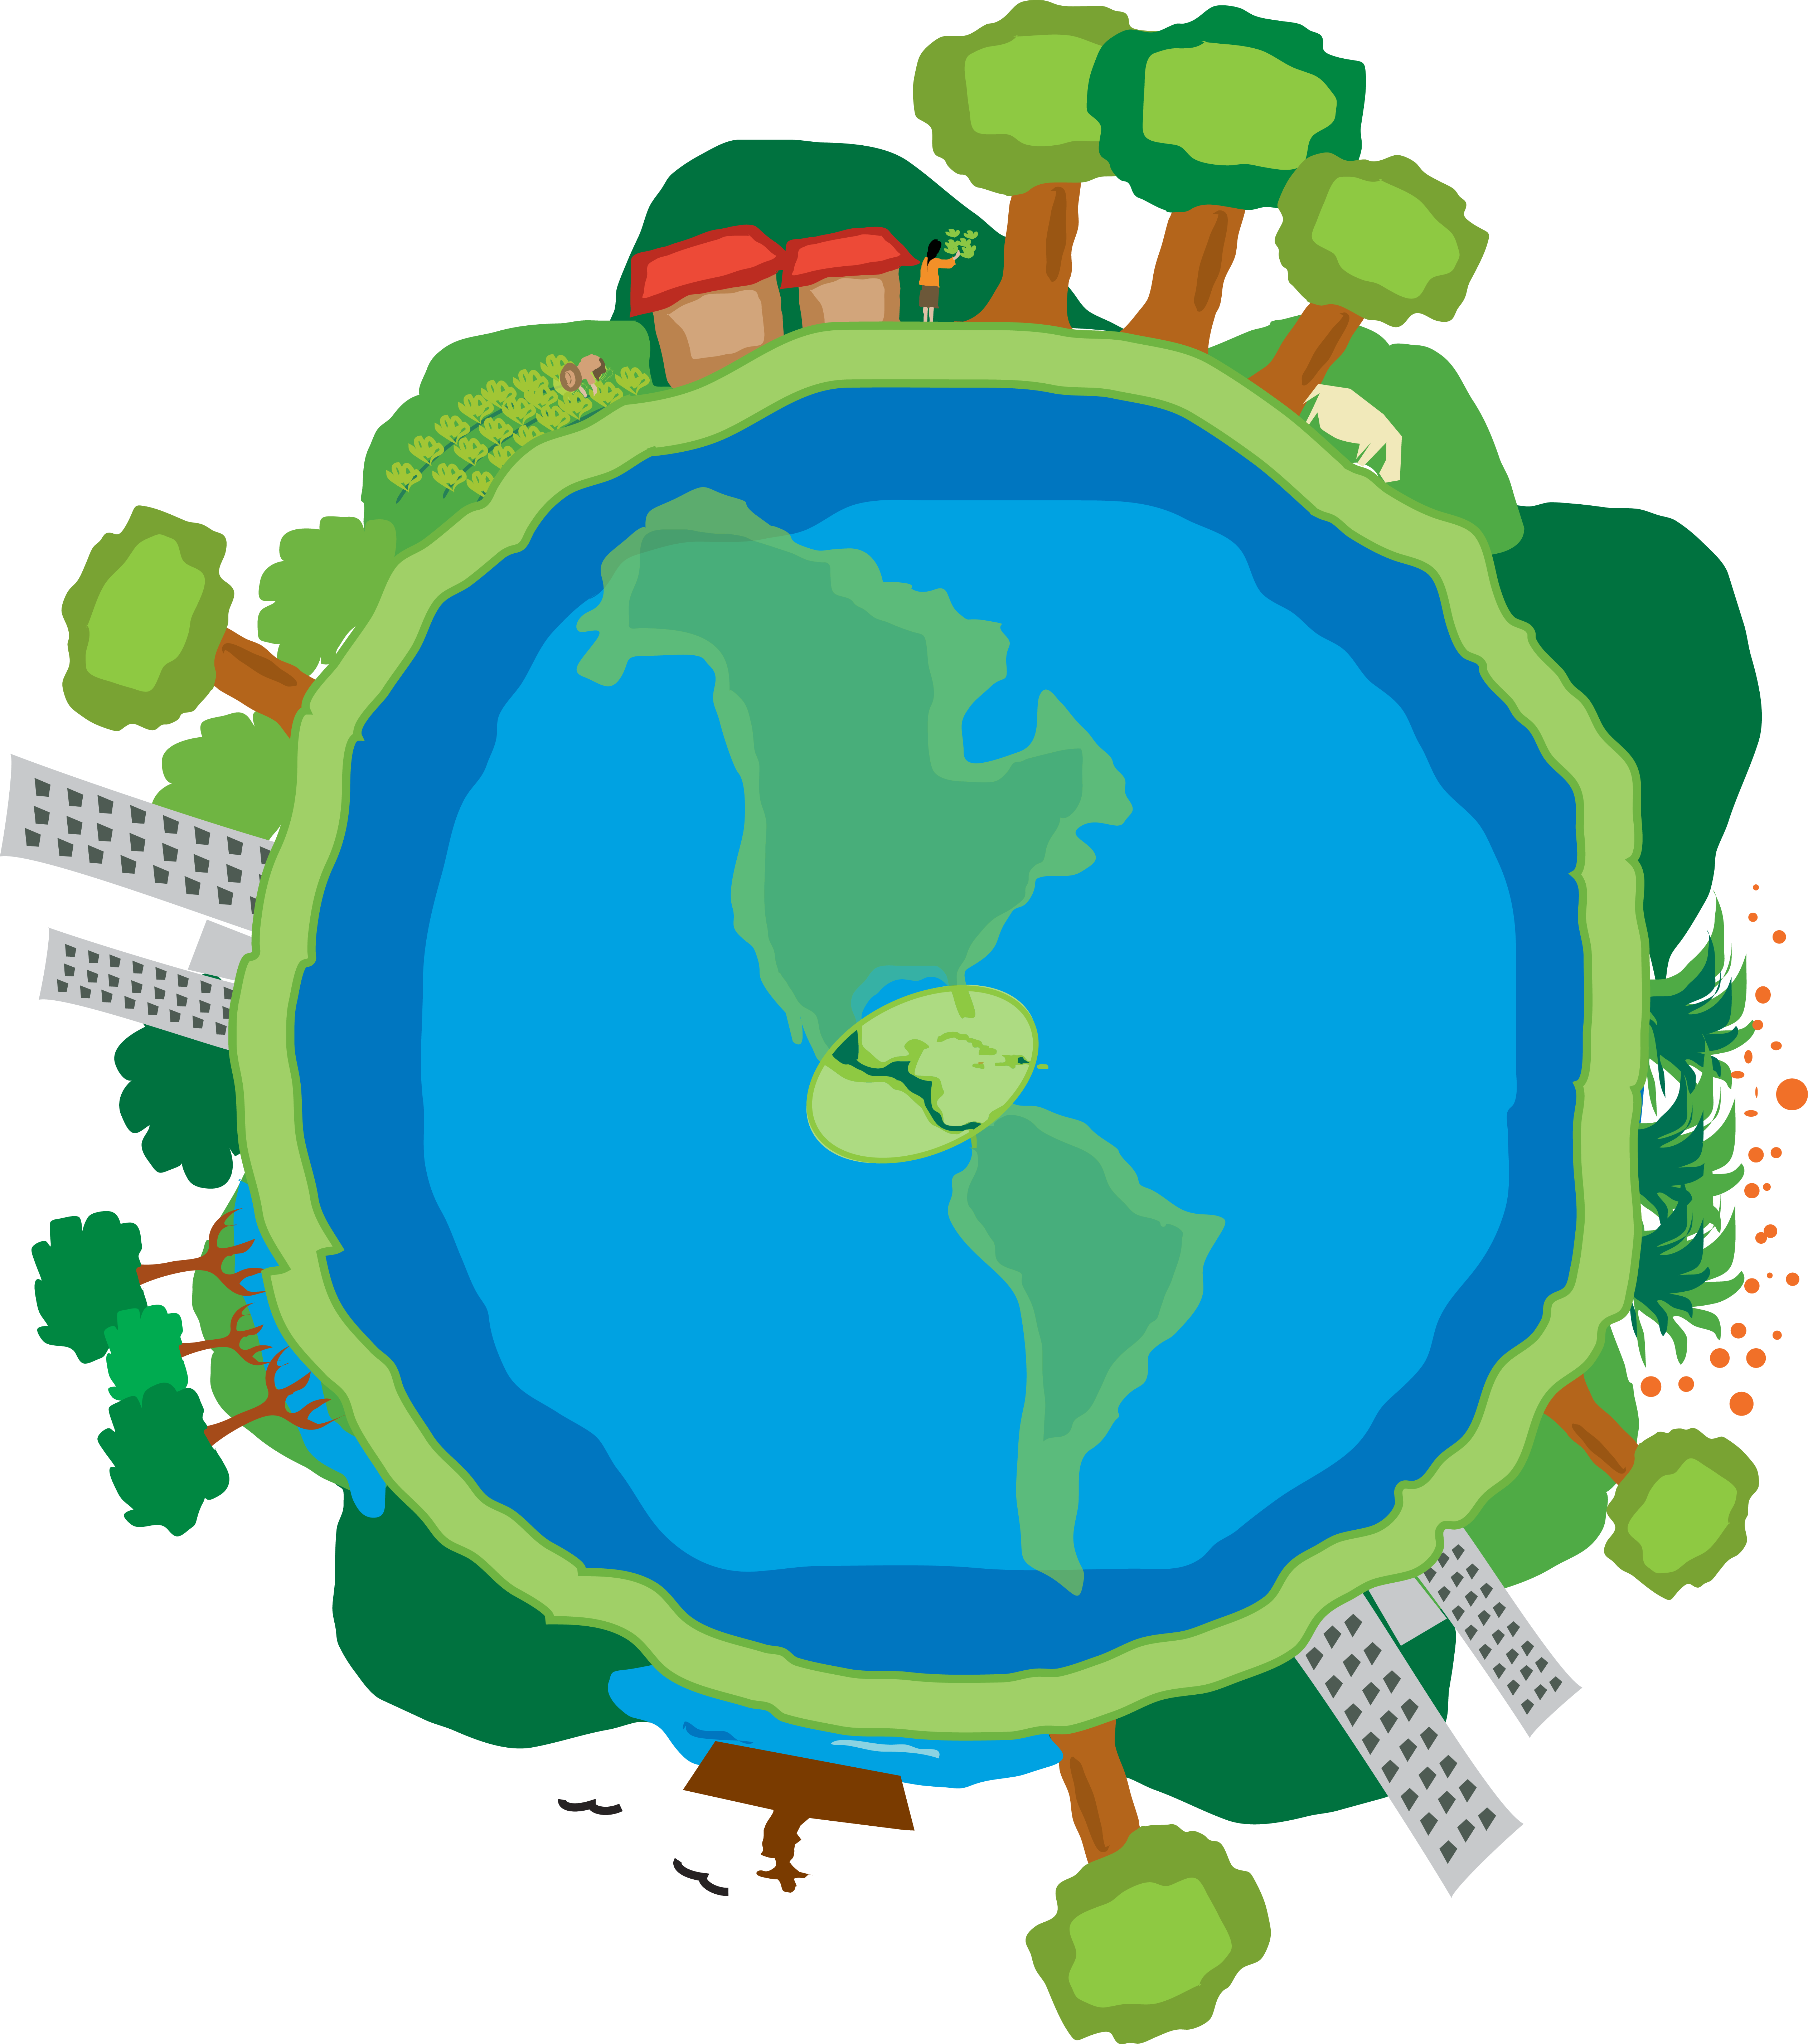 Regional program central america. Environment clipart climate change